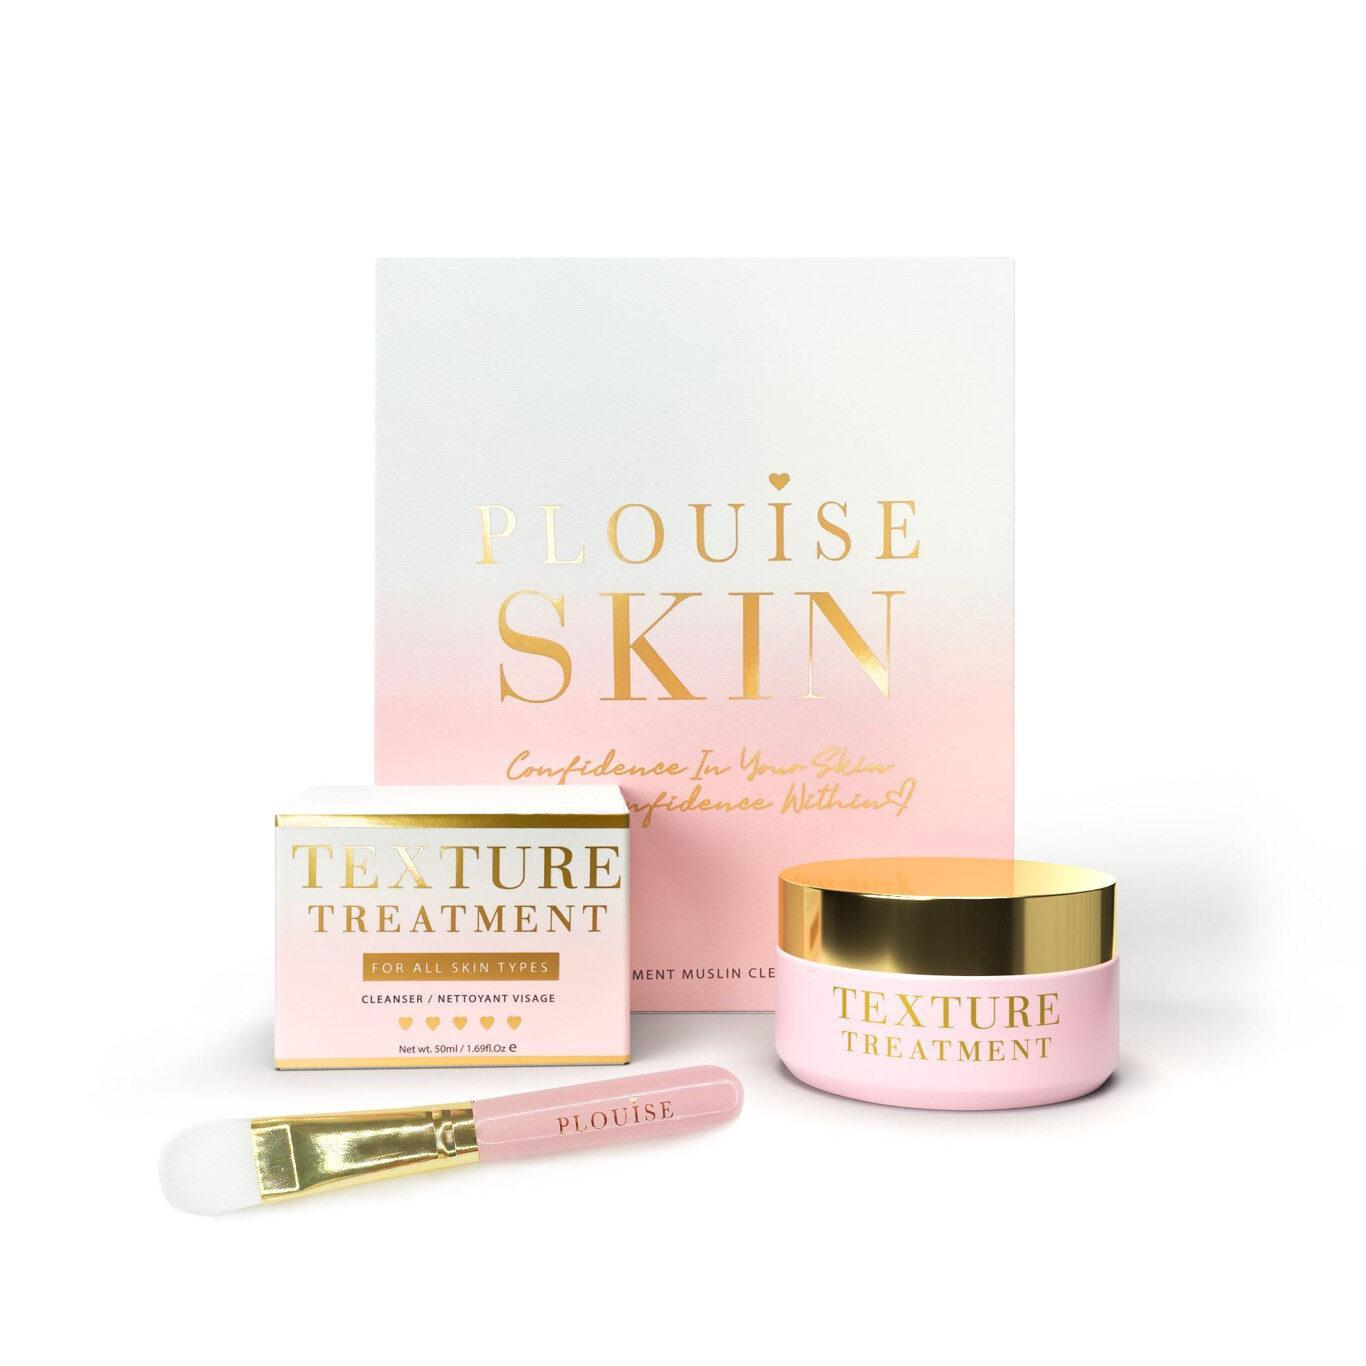 Plouise Skin Texture Treatment and Muslin Cloth